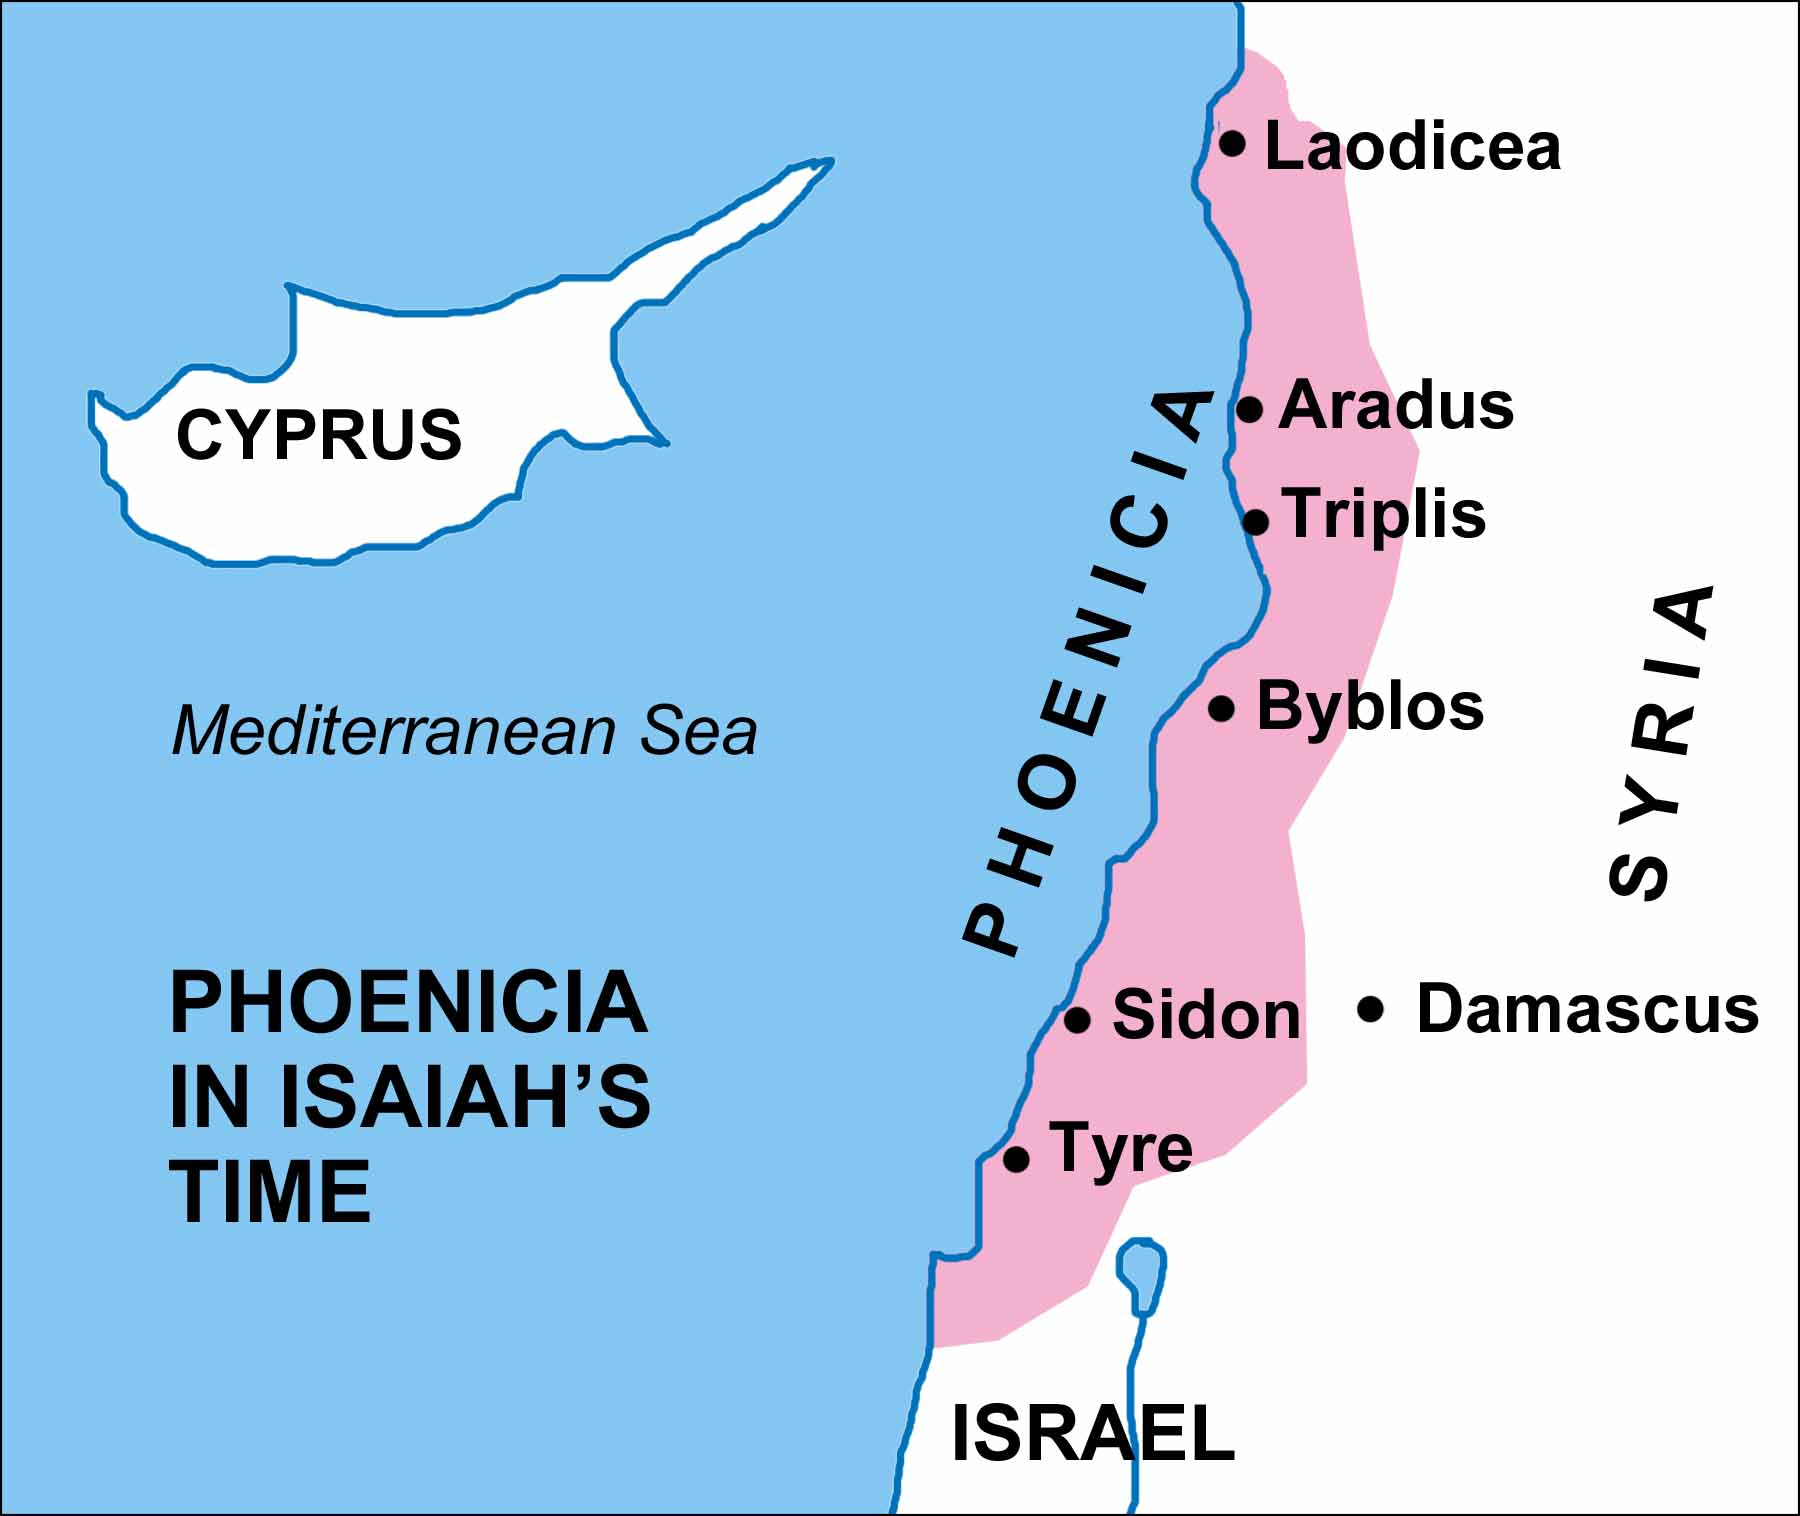 Maps Covering the Periods of Isaiah's Prophecies on nazareth in jesus time, israel over time, map of joppa in the bible, map of 8 major cities in spain, map of jesus journey, map of world, map of jesus life, map of shechem in bible times, bethlehem in jesus time, map of temple in jesus day, map of roman empire during jesus, map during jesus' time, jerusalem in jesus time, bethabara in jesus time, map of jesus travels, map of jesus ministry, israel during jesus' time, map of palestine over time, palestine map jesus' time, map of galilee,